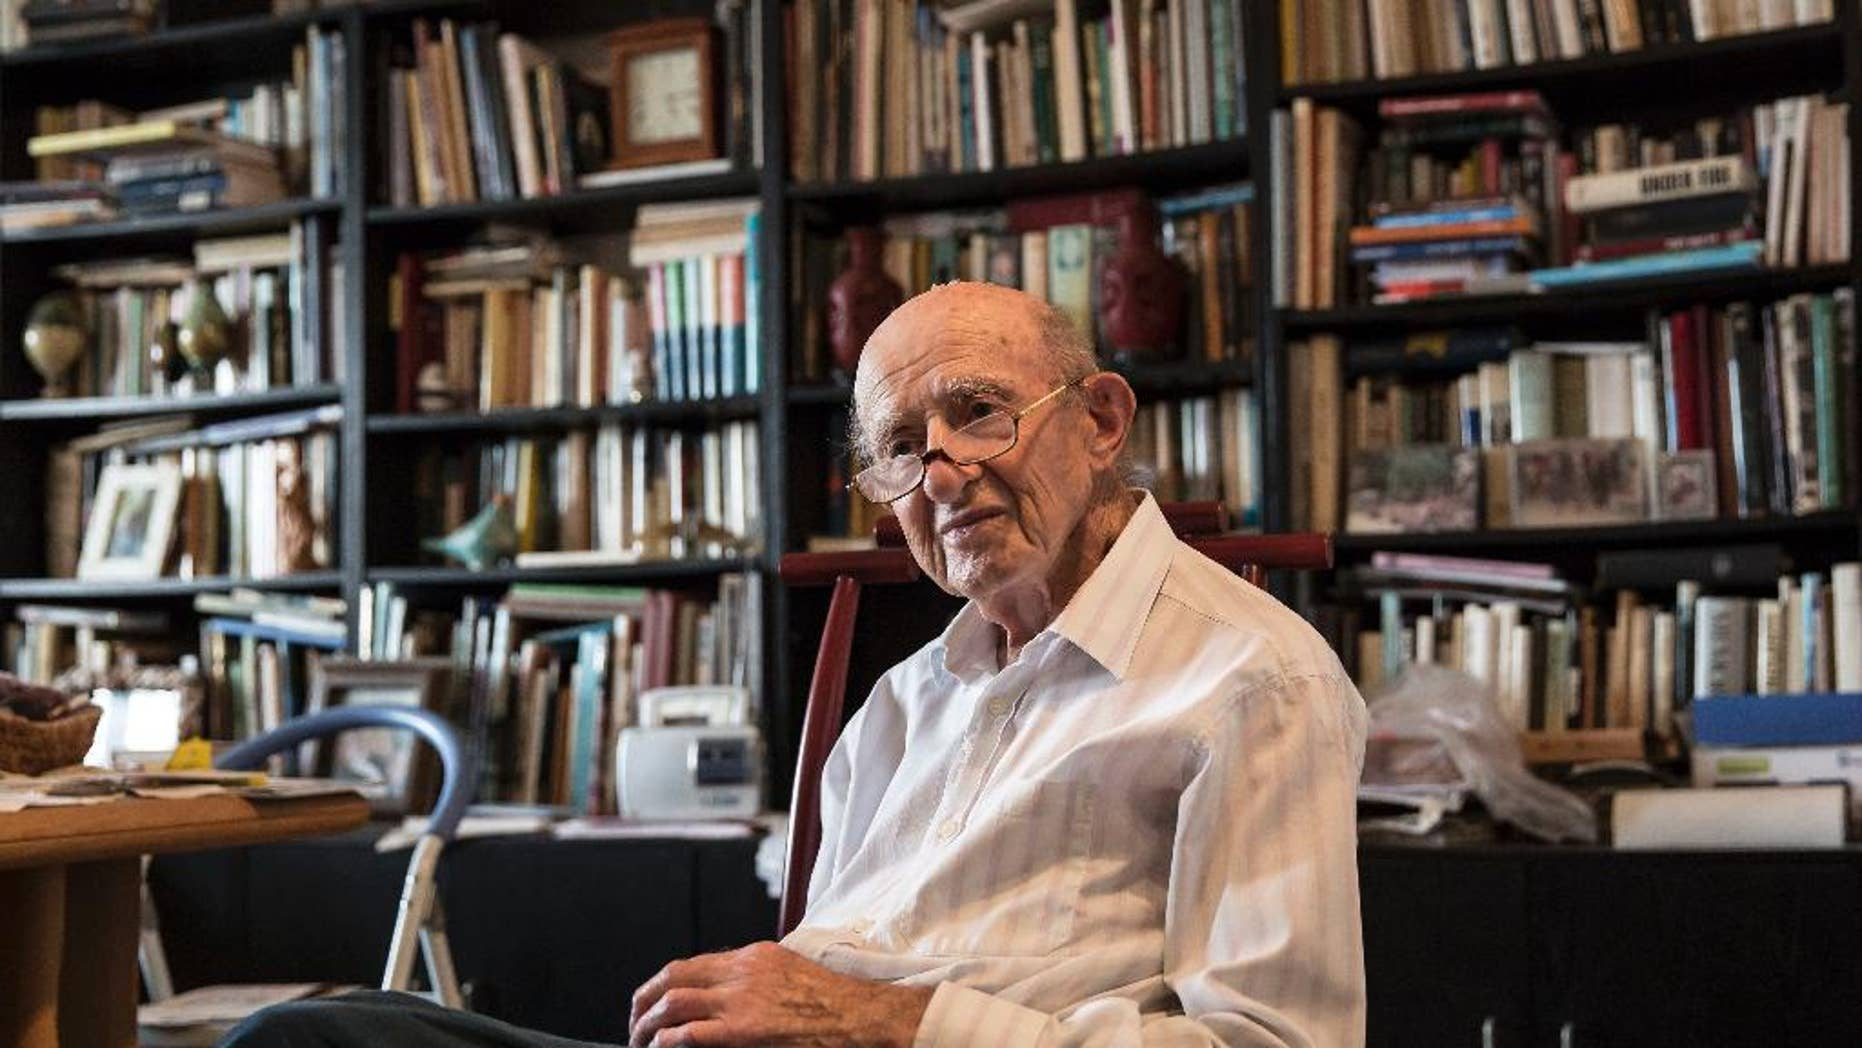 """File - In this file photo made on Monday, May 23, 2016, Joseph Harmatz sits during an interview with the Associated Press at his apartment in Tel Aviv, Israel. Harmatz, a Holocaust survivor who led the most daring attempt of Jews to seek revenge against their former Nazi tormentors, has died. He was 91. Harmatz was one of the few remaining Jewish """"Avengers"""" who carried out a mass poisoning of former SS men in an American prisoner-of-war camp in 1946 after World War II. The poisoning sickened more than 2,200 Germans but ultimately caused no known deaths.(AP Photo /Tsafrir Abayov, File)"""